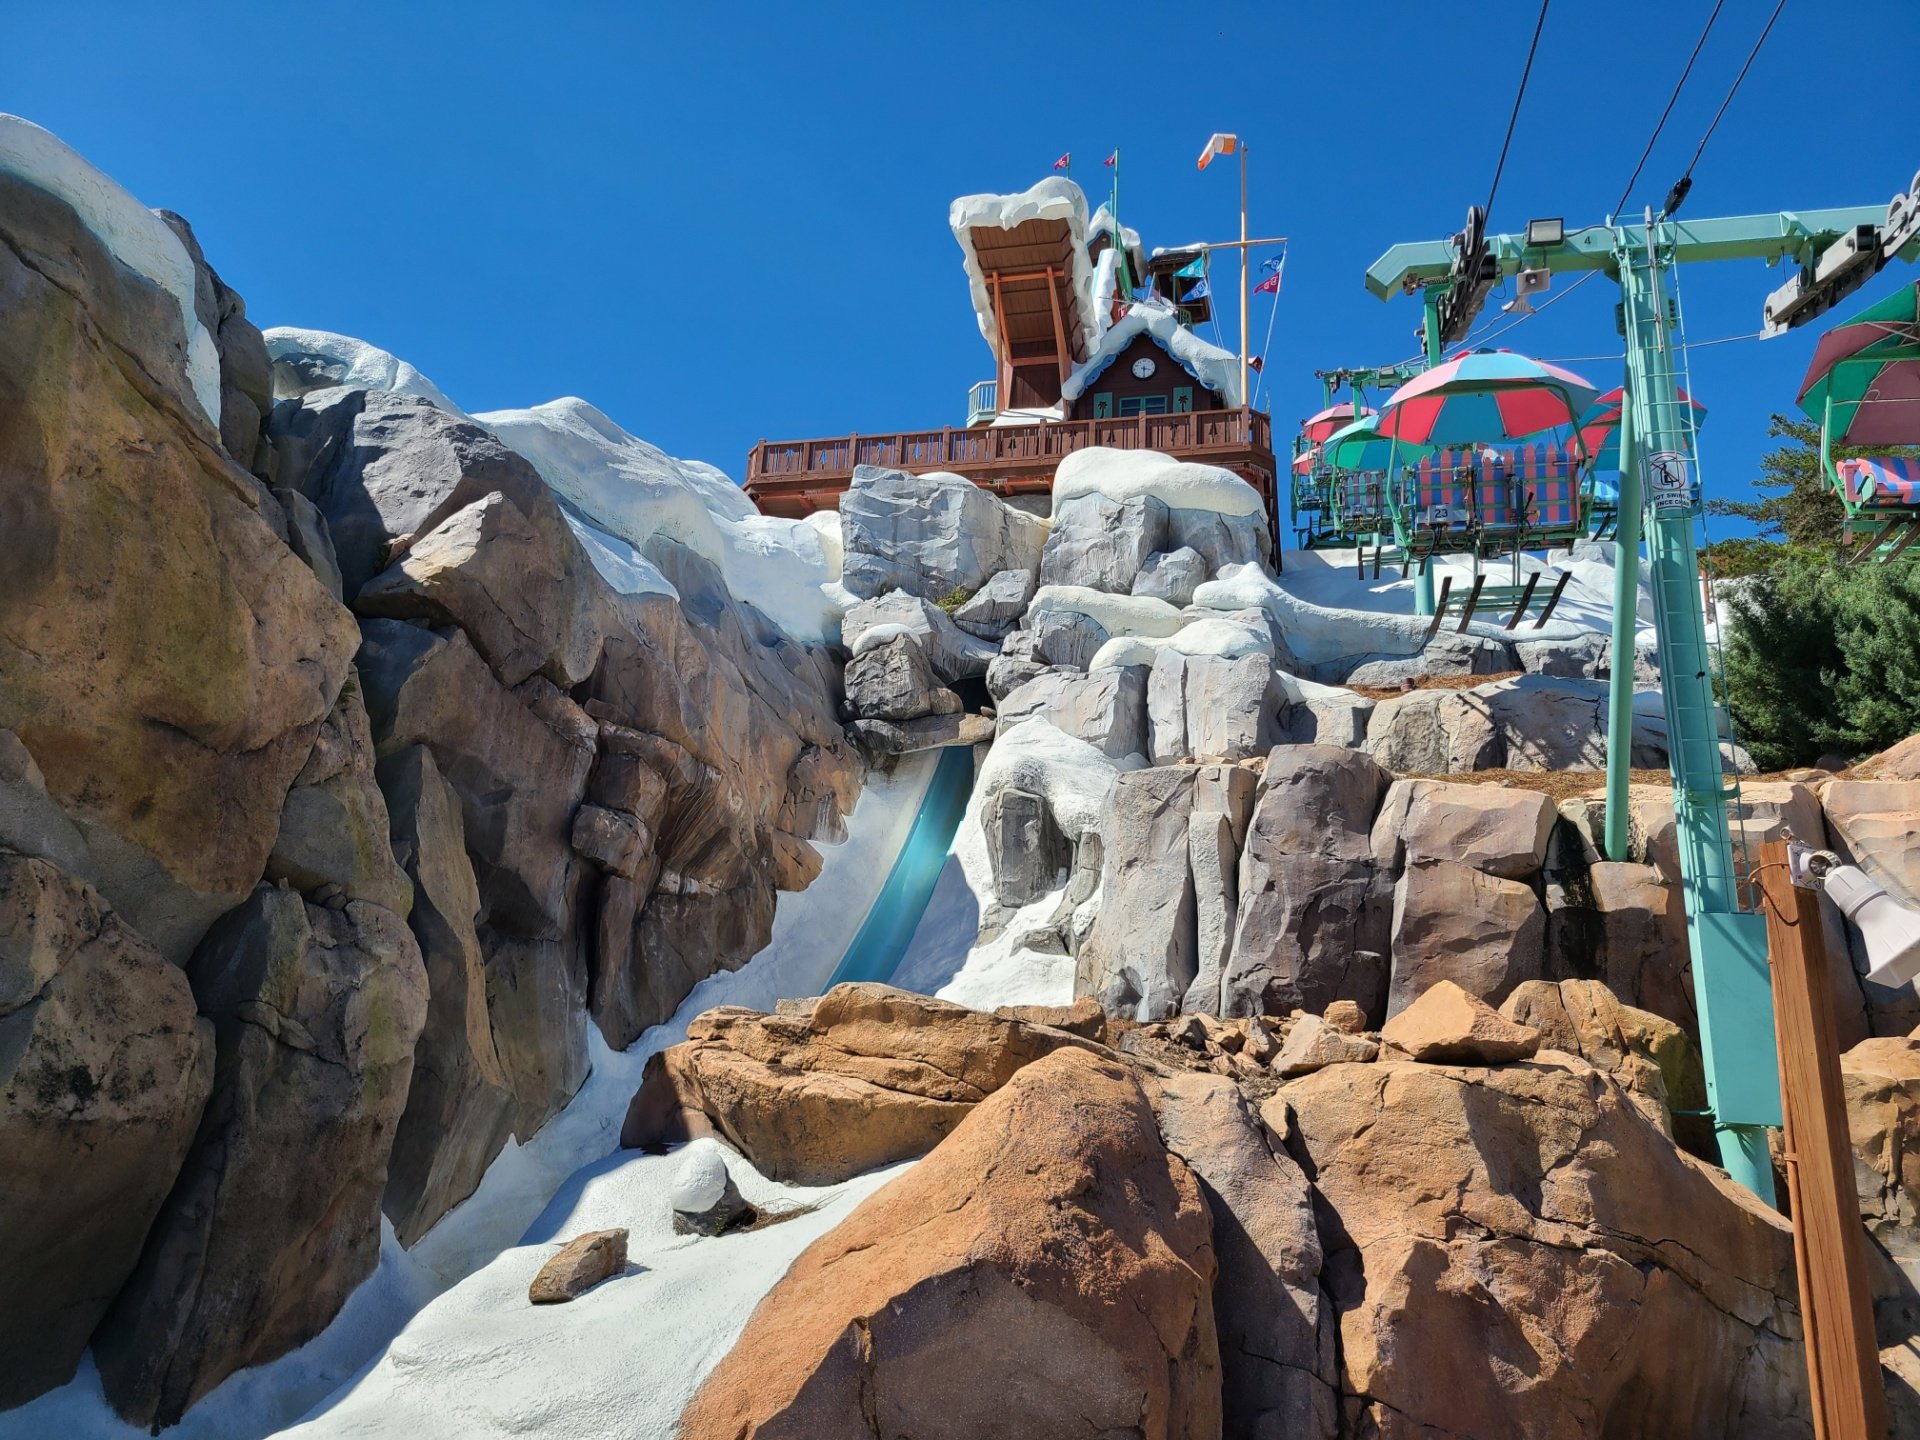 Top Things To Do At Disney's Blizzard Beach